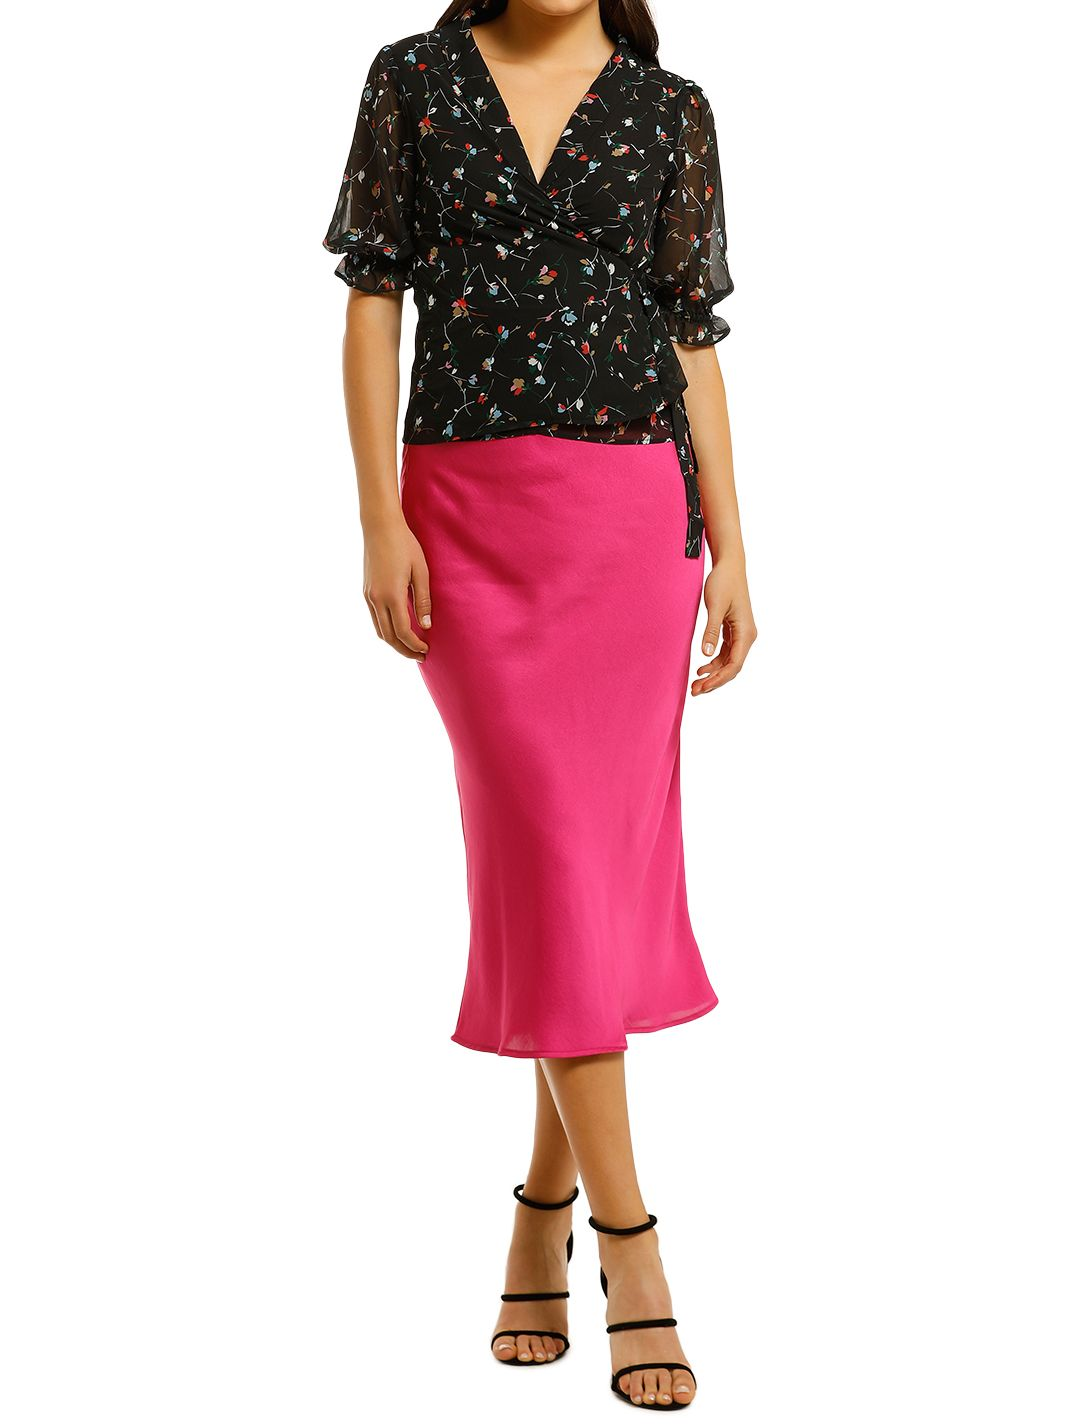 The-East-Order-Neada-Top-Confetti-Floral-Front